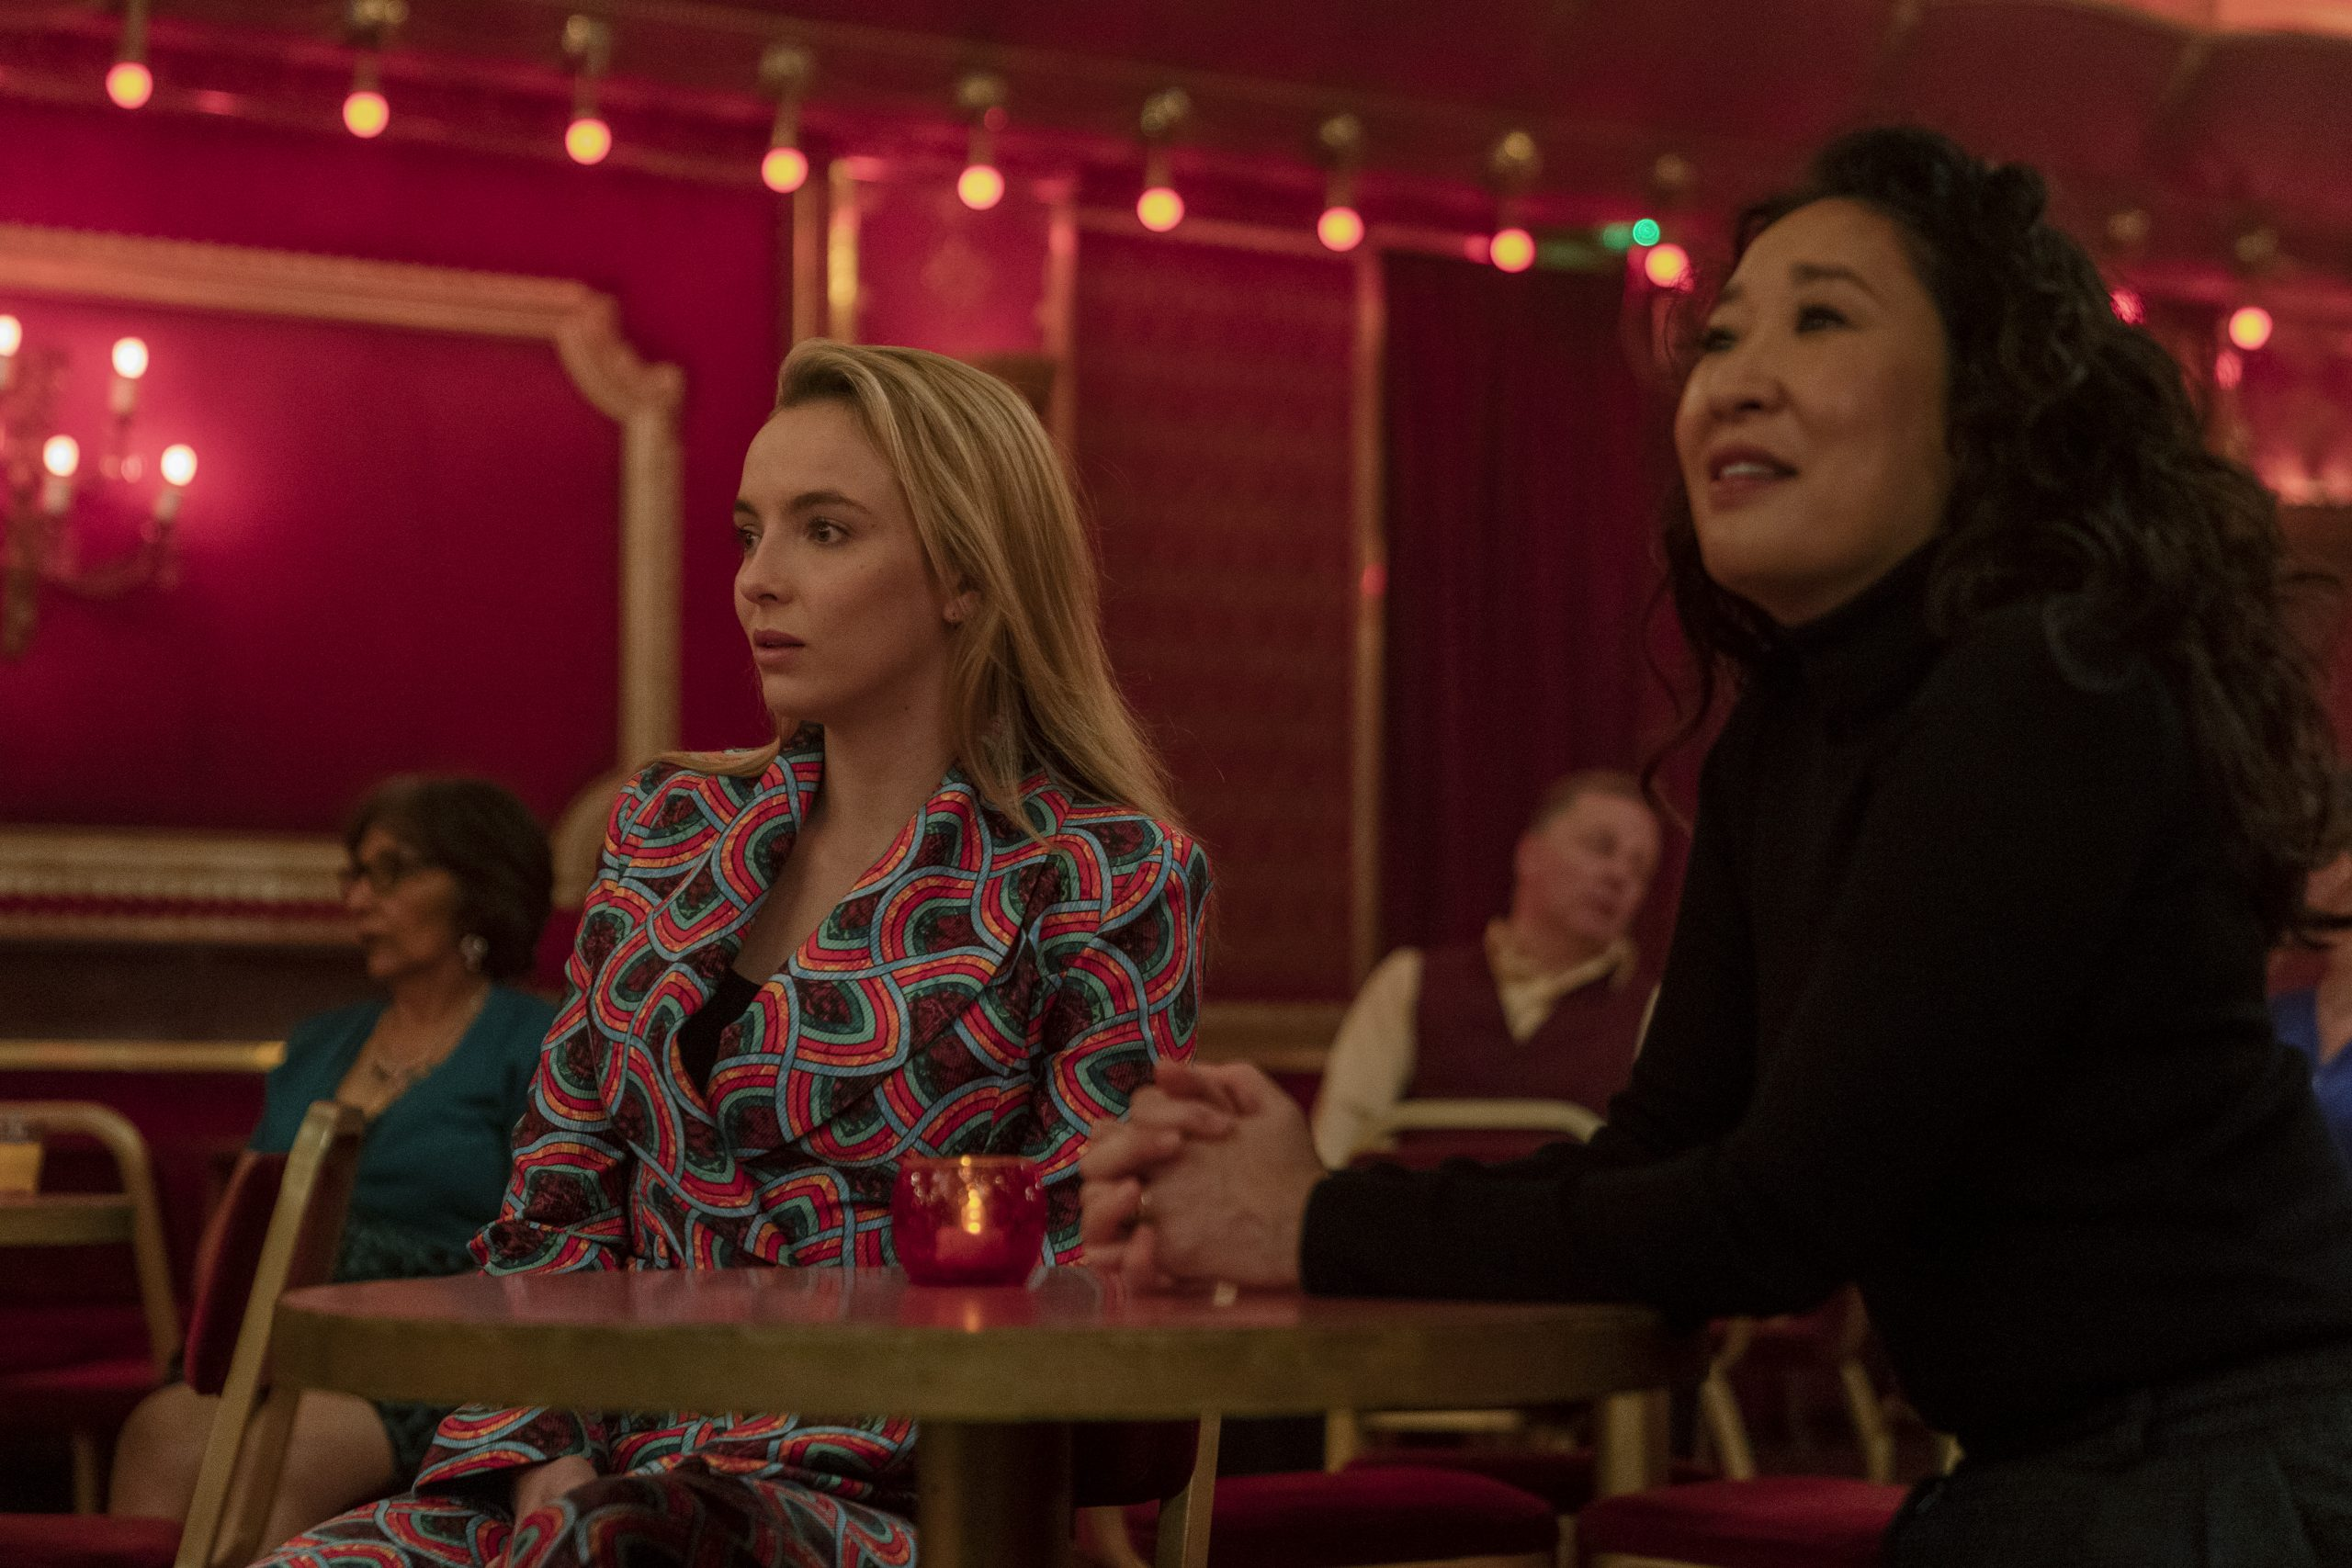 Eve and Villanelle have a less awkward and more compassionate reunion while Konstantin's double dealings catch up to him.